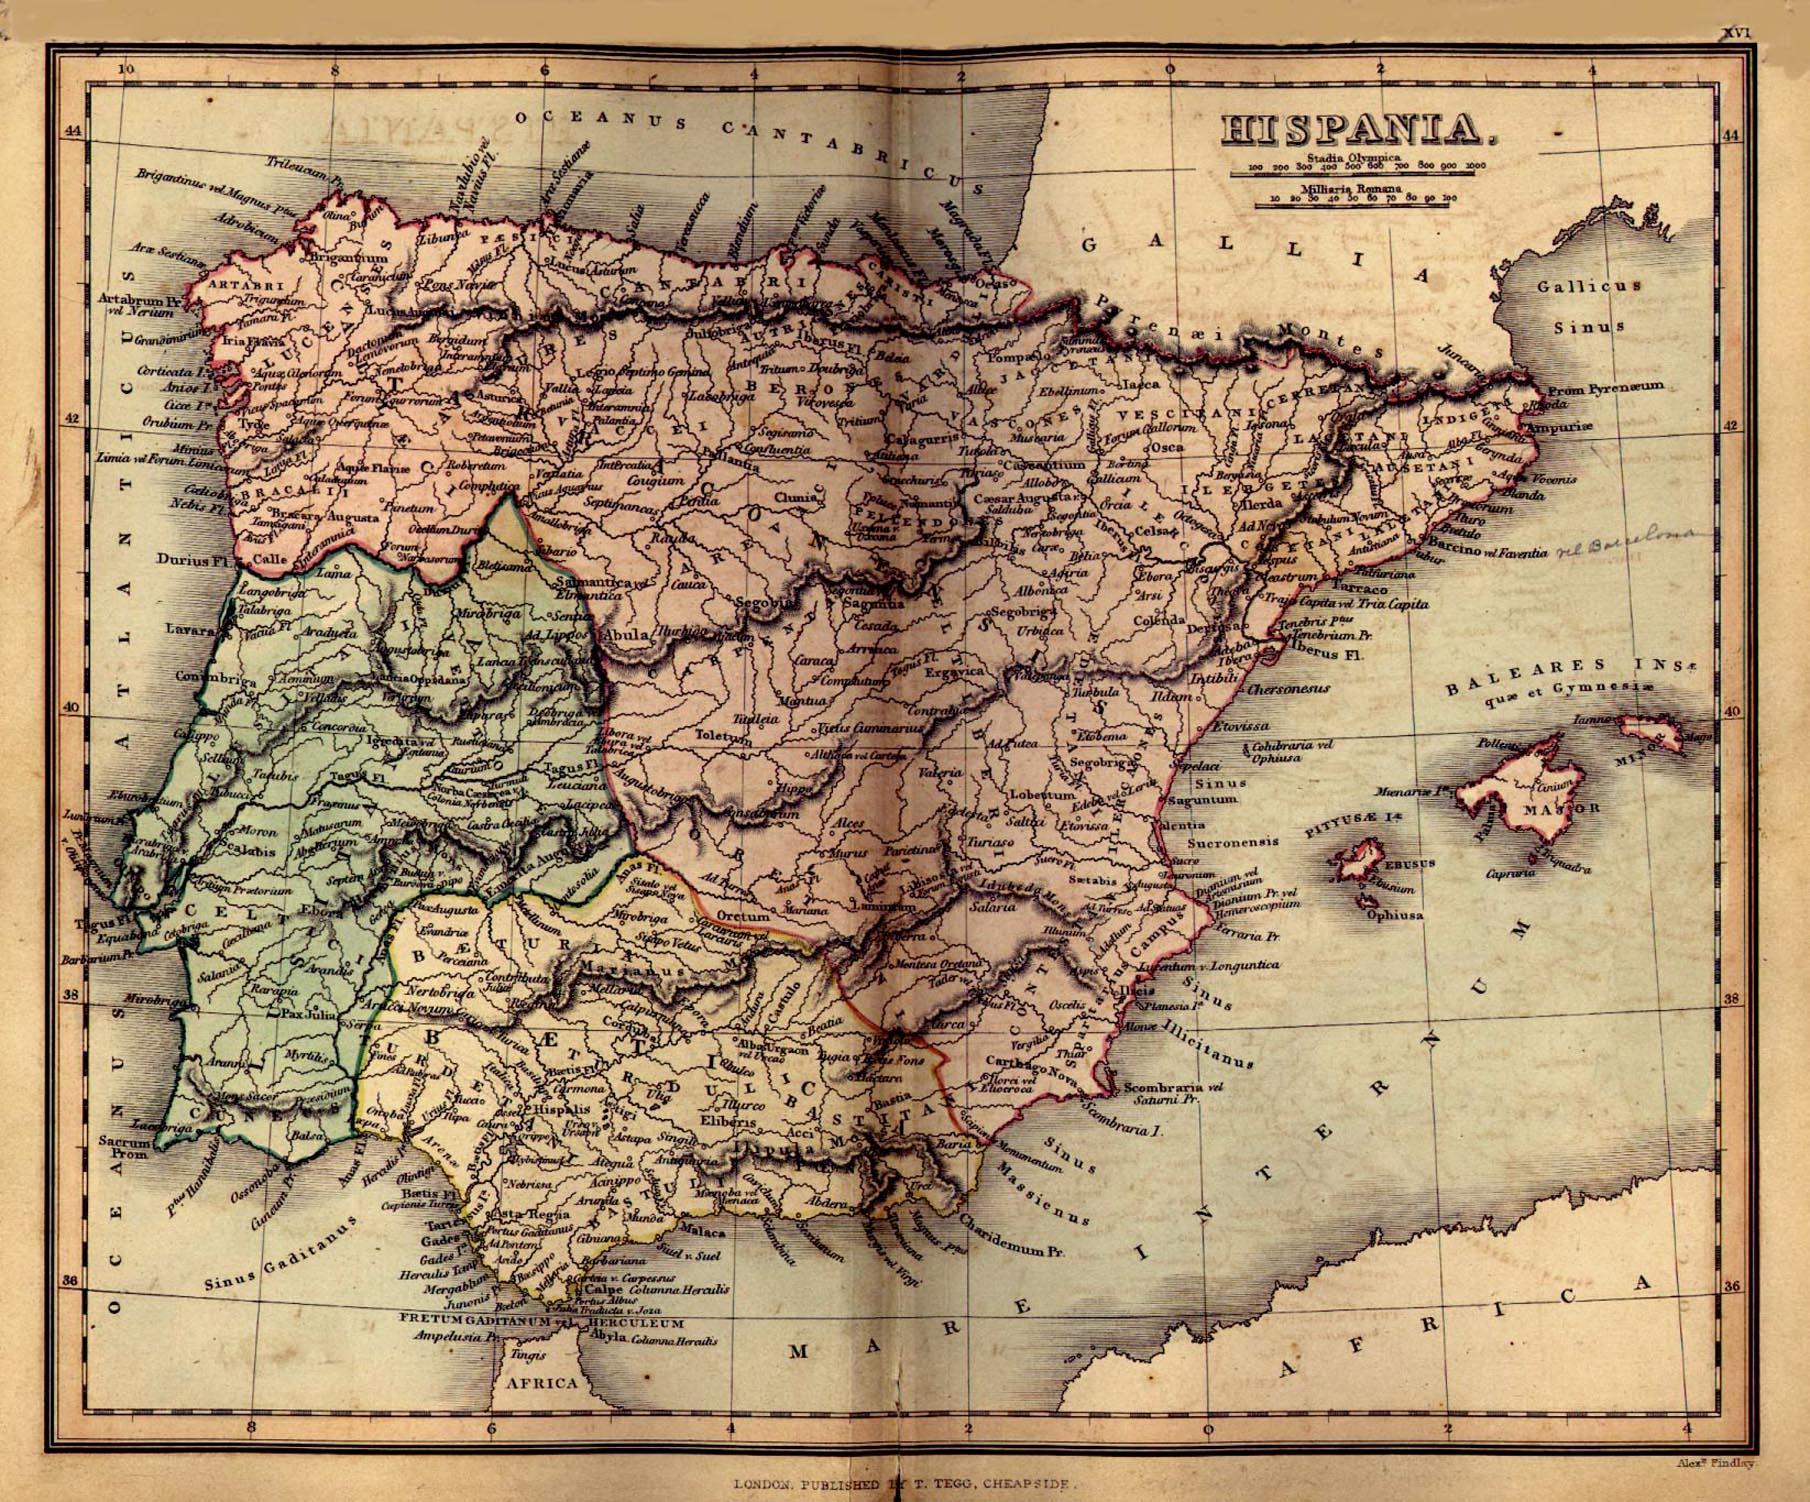 Spain Maps - Perry-Castañeda Map Collection - UT Liry Online on map of austria in spanish, map of dominican republic in spanish, map of spanish speaking world, map of equatorial guinea in spanish, map of china in spanish, map of continents in spanish, map of cities in espana, map of countries that speak spanish, espana capital in spanish, map of united states in spanish, map of puerto rico in spanish, map of egypt in spanish, map of north america in spanish, map of trinidad in spanish, map of barcelona in spanish, map of paraguay in spanish, map of spanish speaking countries, capital of venezuela in spanish, map of england in 1500, map of the world in spanish,